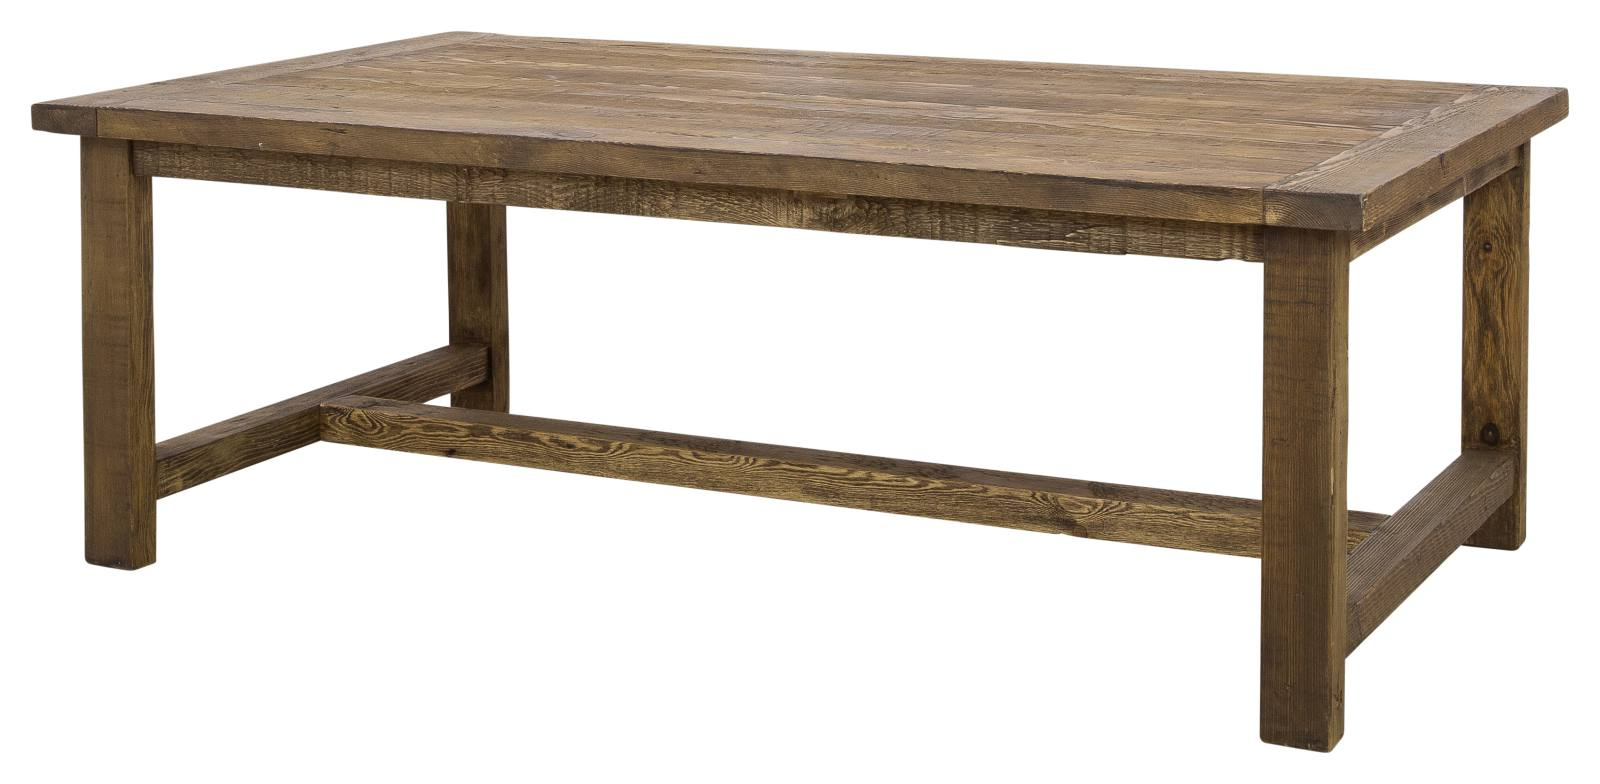 Landon Recycled Pine Coffee Table, Natural – Coffee Tables Regarding 2018 Natural Pine Coffee Tables (View 3 of 20)